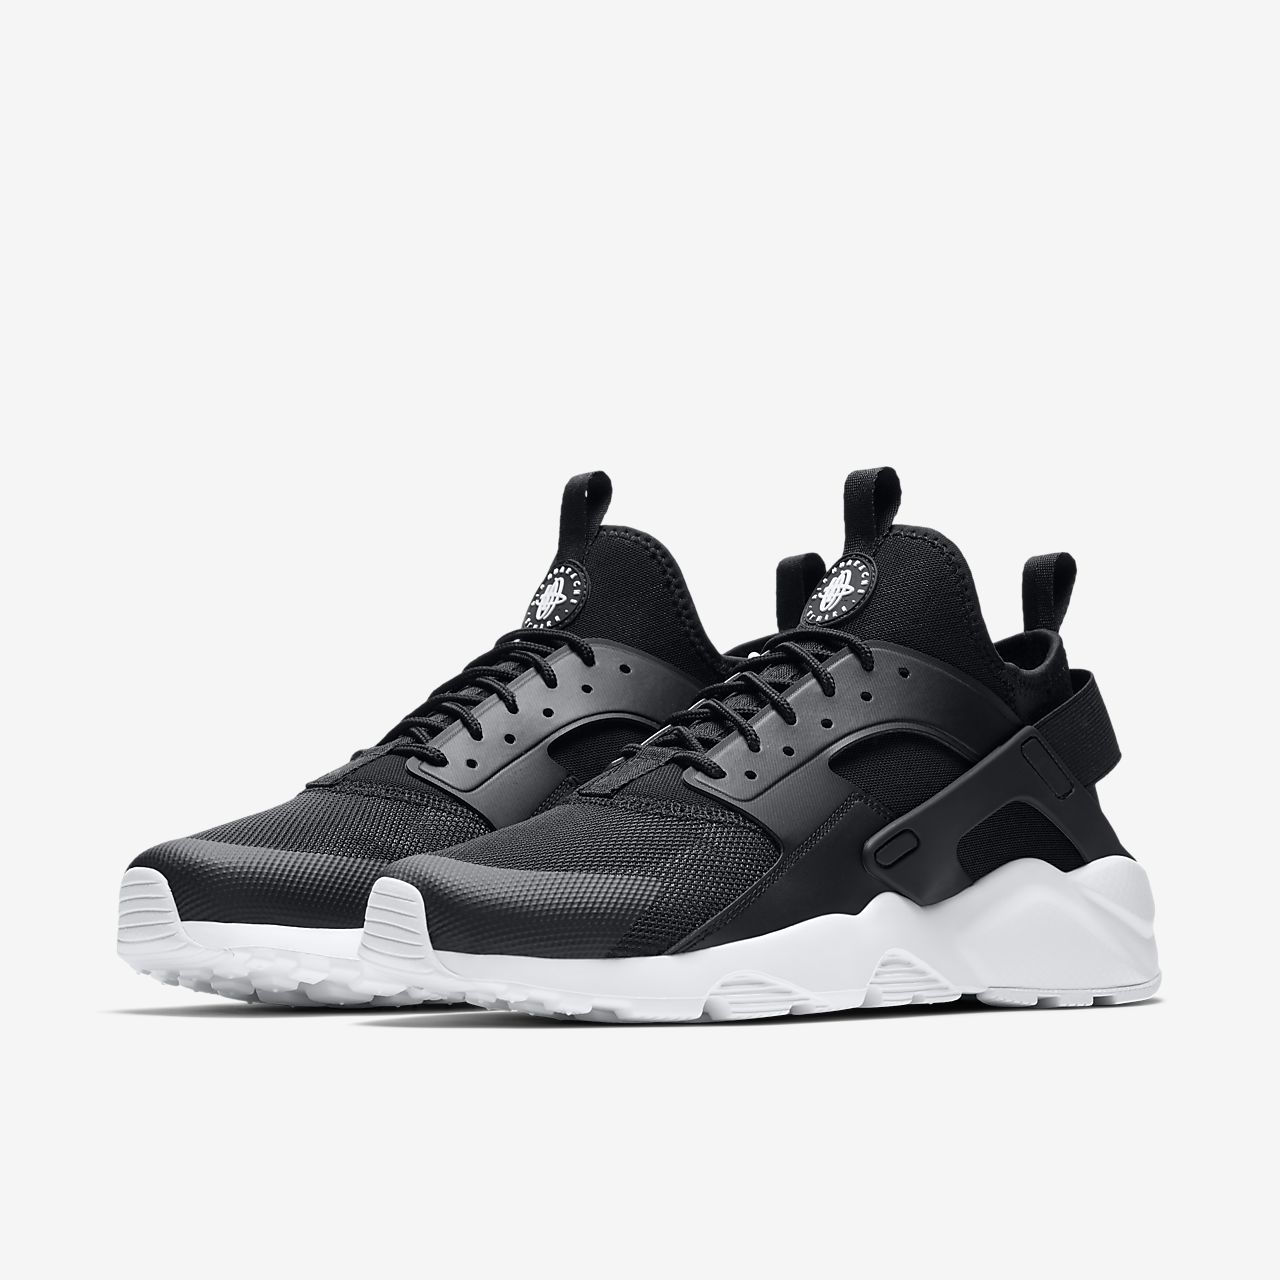 518bb5ed82c1 Nike Air Huarache Ultra Men s Shoe. Nike.com GB